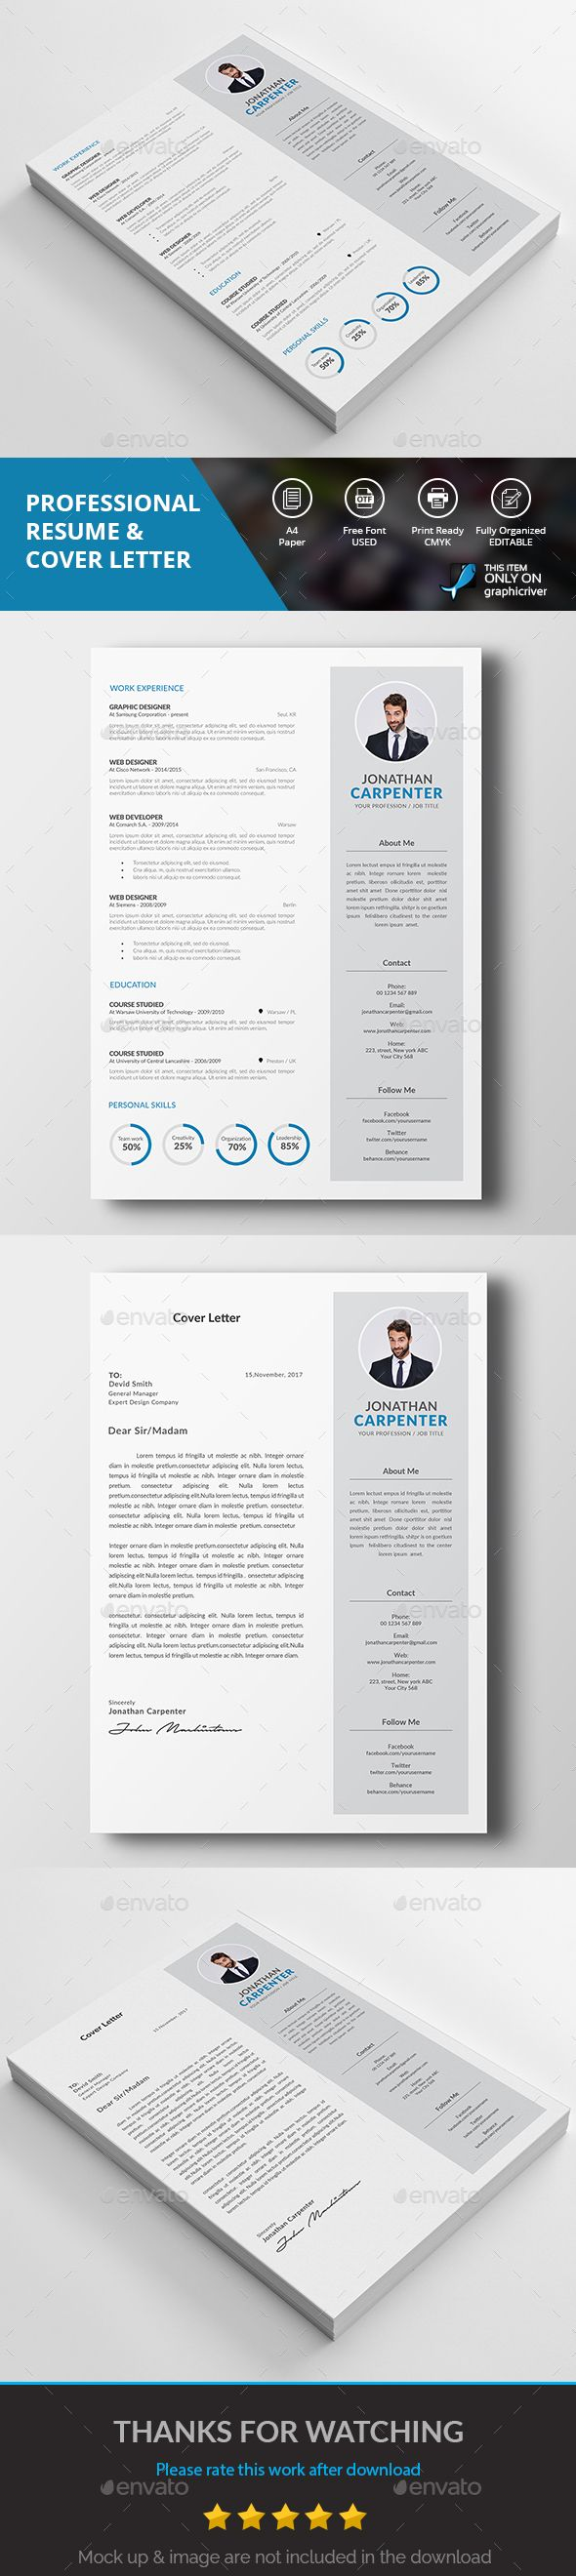 free resume templates Alam It Resume Elegant